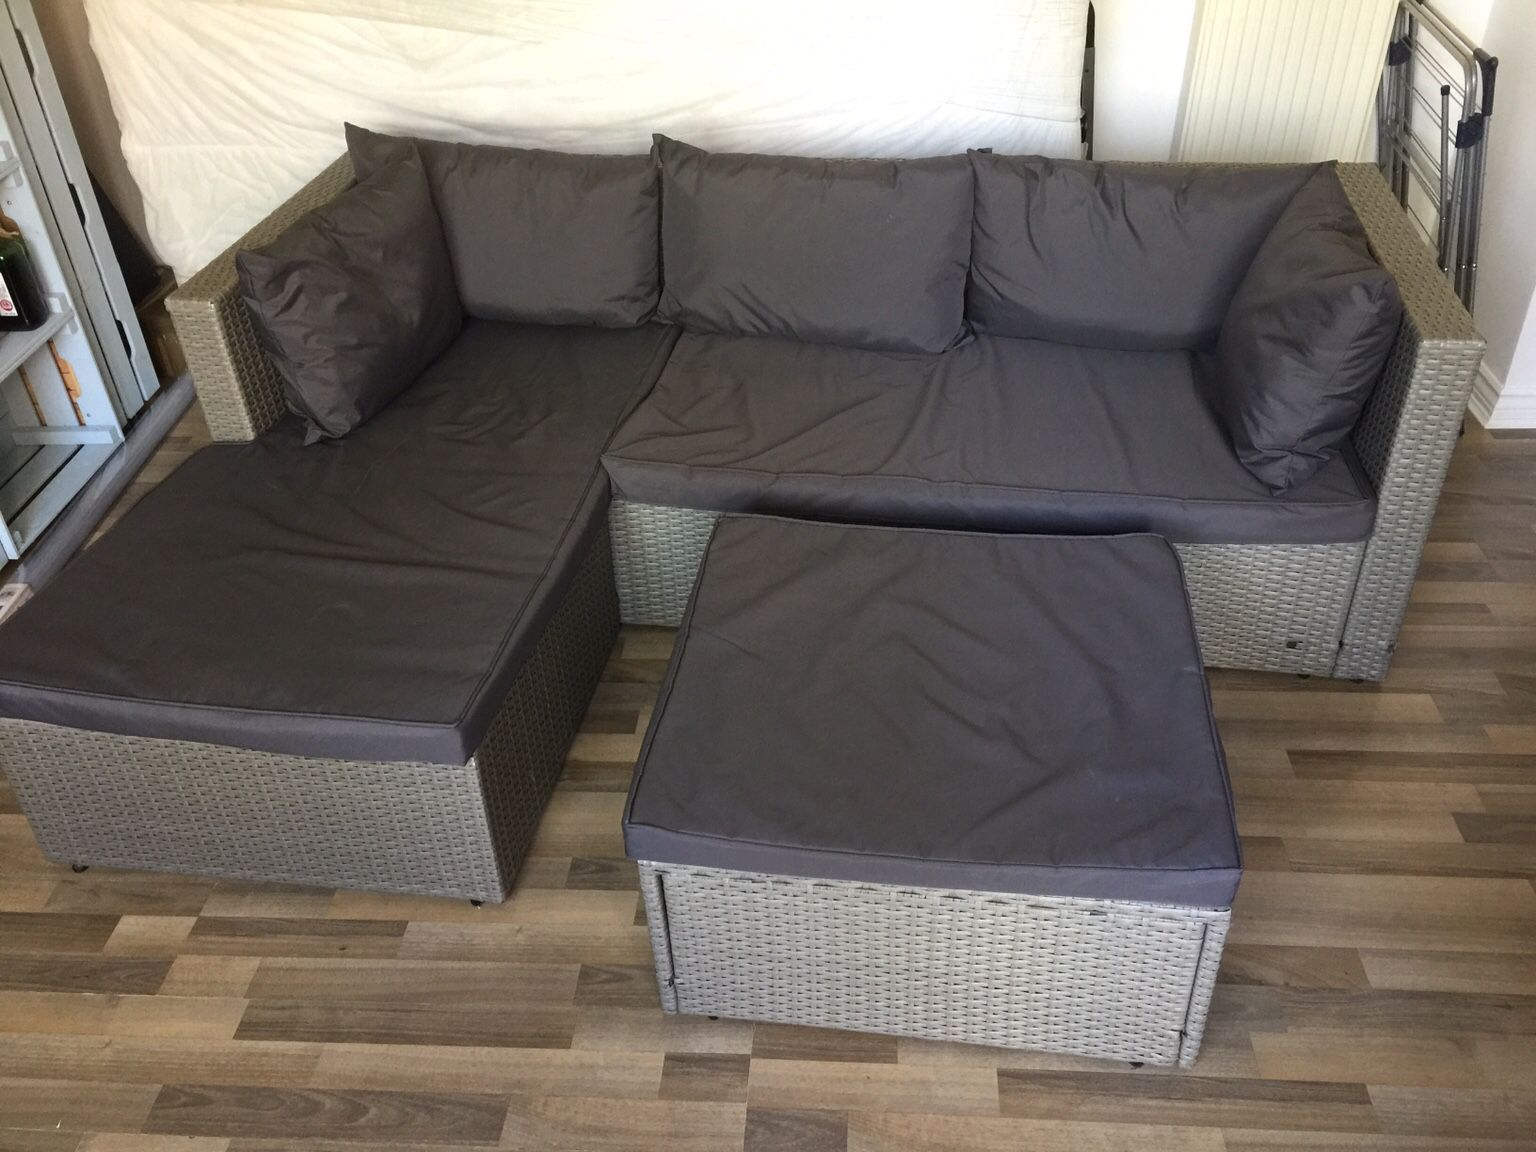 Aldi Rattan Effect Corner Sofa Set Cover In 2020 Corner Sofa Set Rattan Corner Sofa Corner Sofa Covers